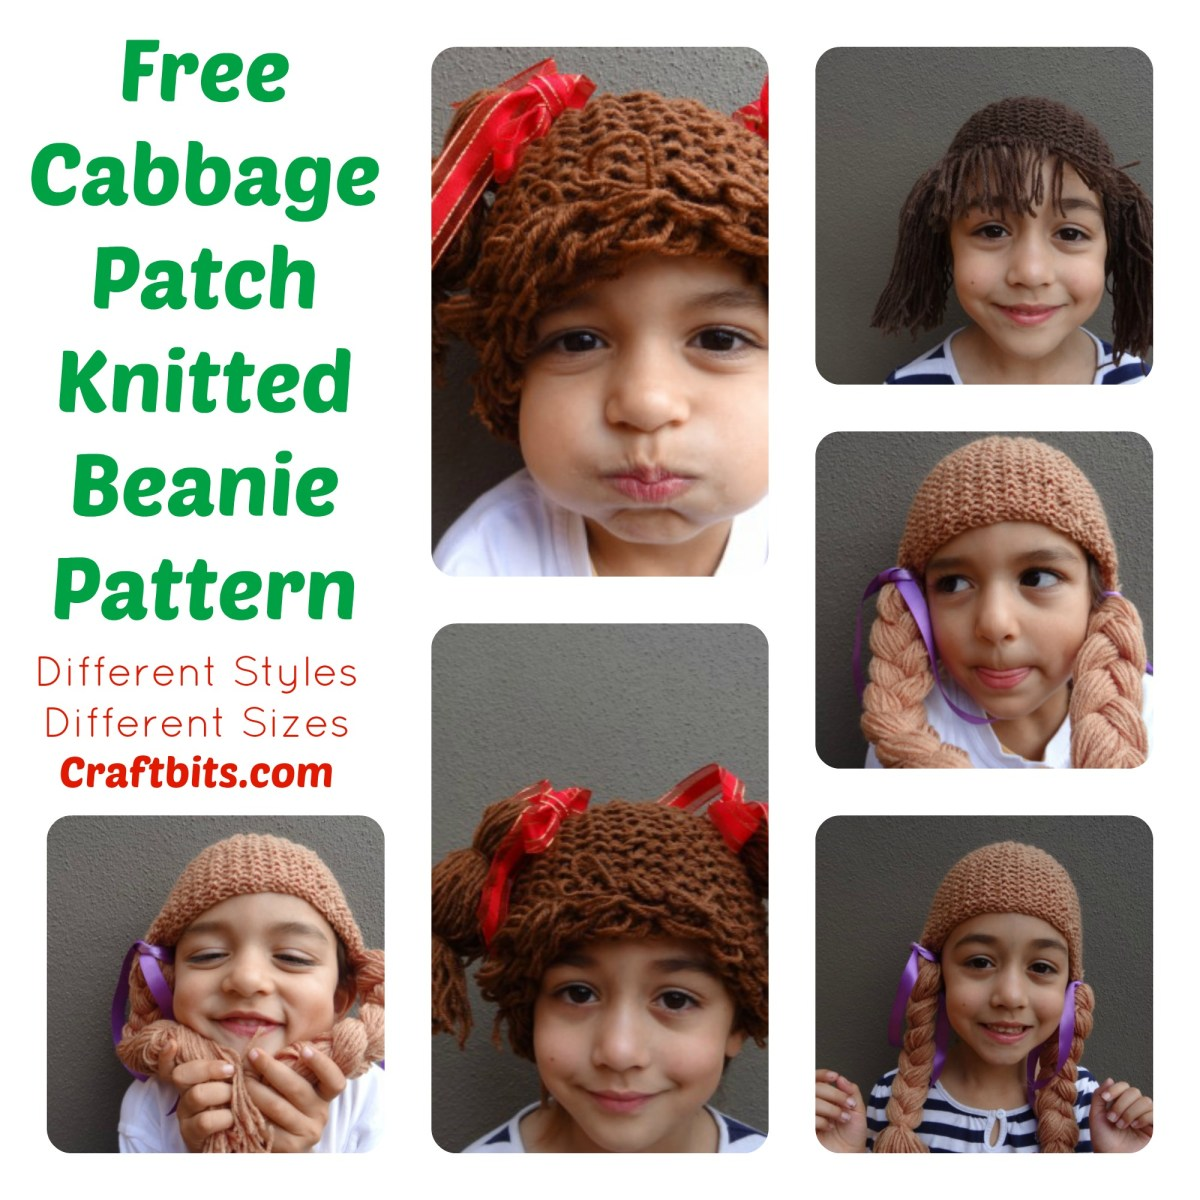 Crochet Pattern For Cabbage Patch Baby Hat : Cabbage Patch Beanie Pattern ? craftbits.com